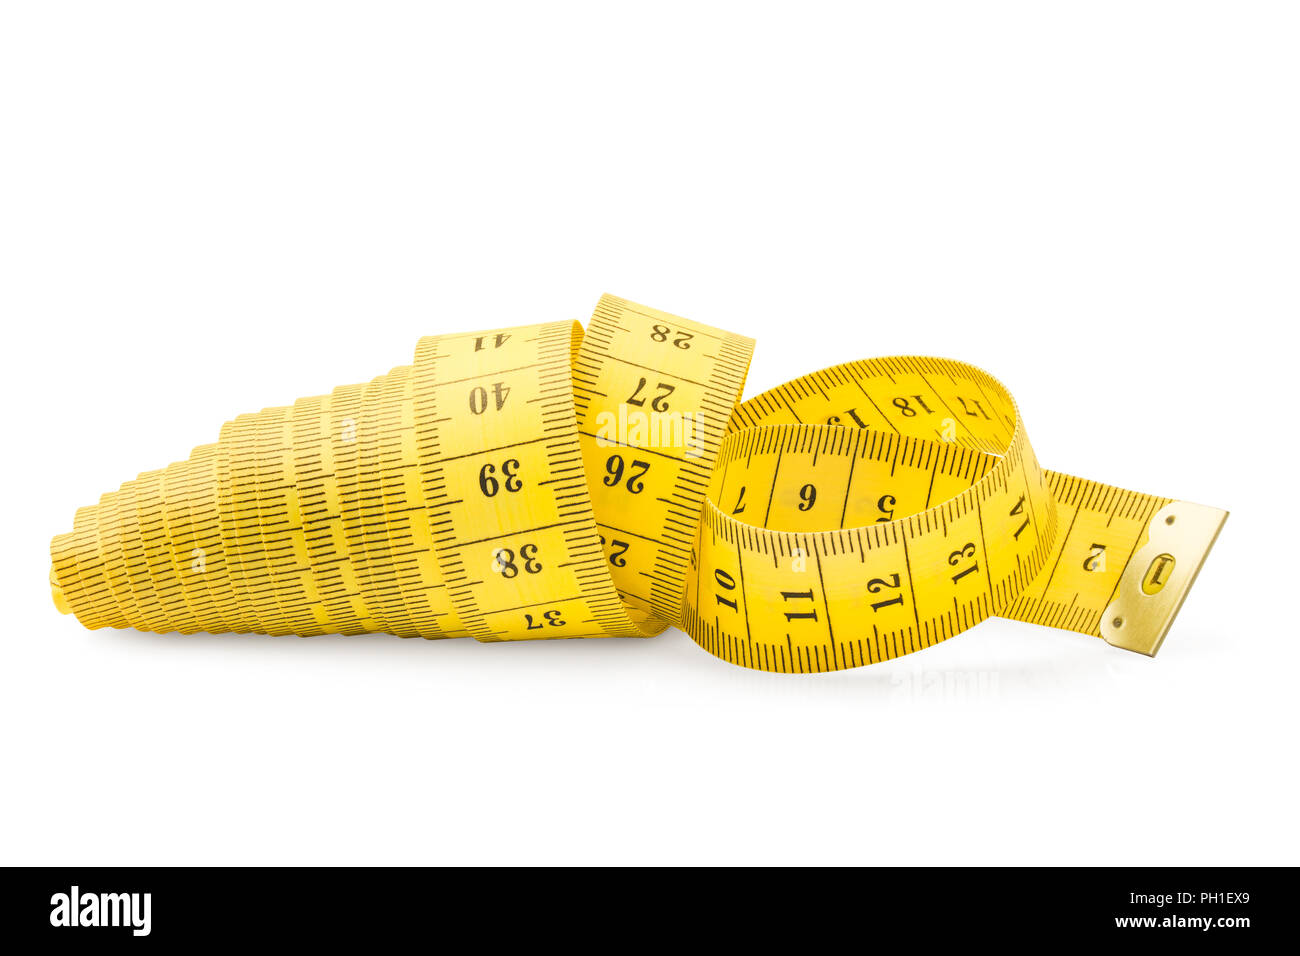 measuring tape, isolated on white background, slimming concept - Stock Image